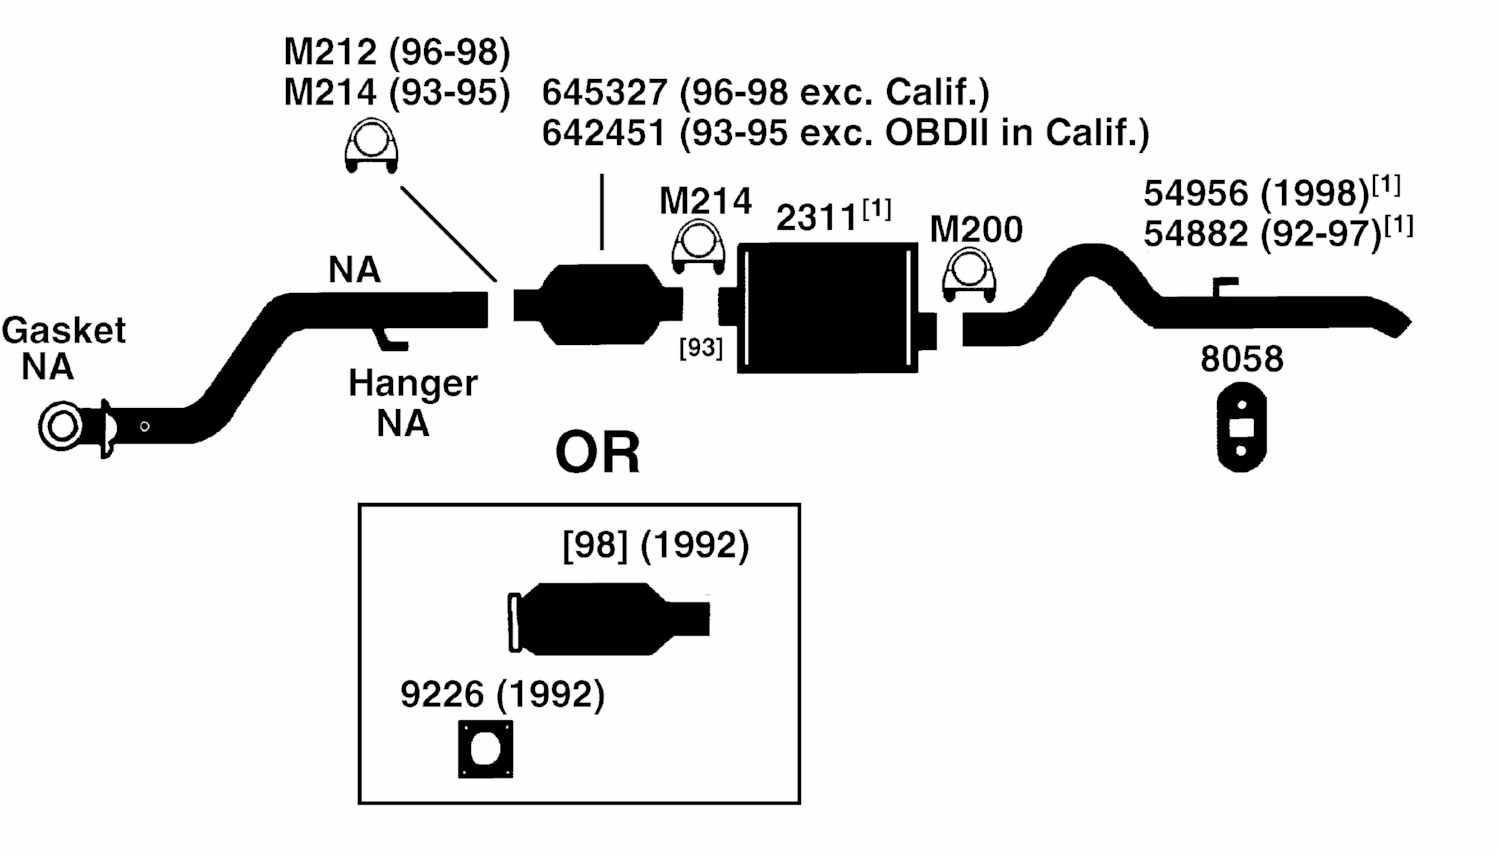 hight resolution of 1997 jeep exhaust diagram wiring diagram details1997 jeep exhaust diagram wiring diagram technic 1997 jeep wrangler